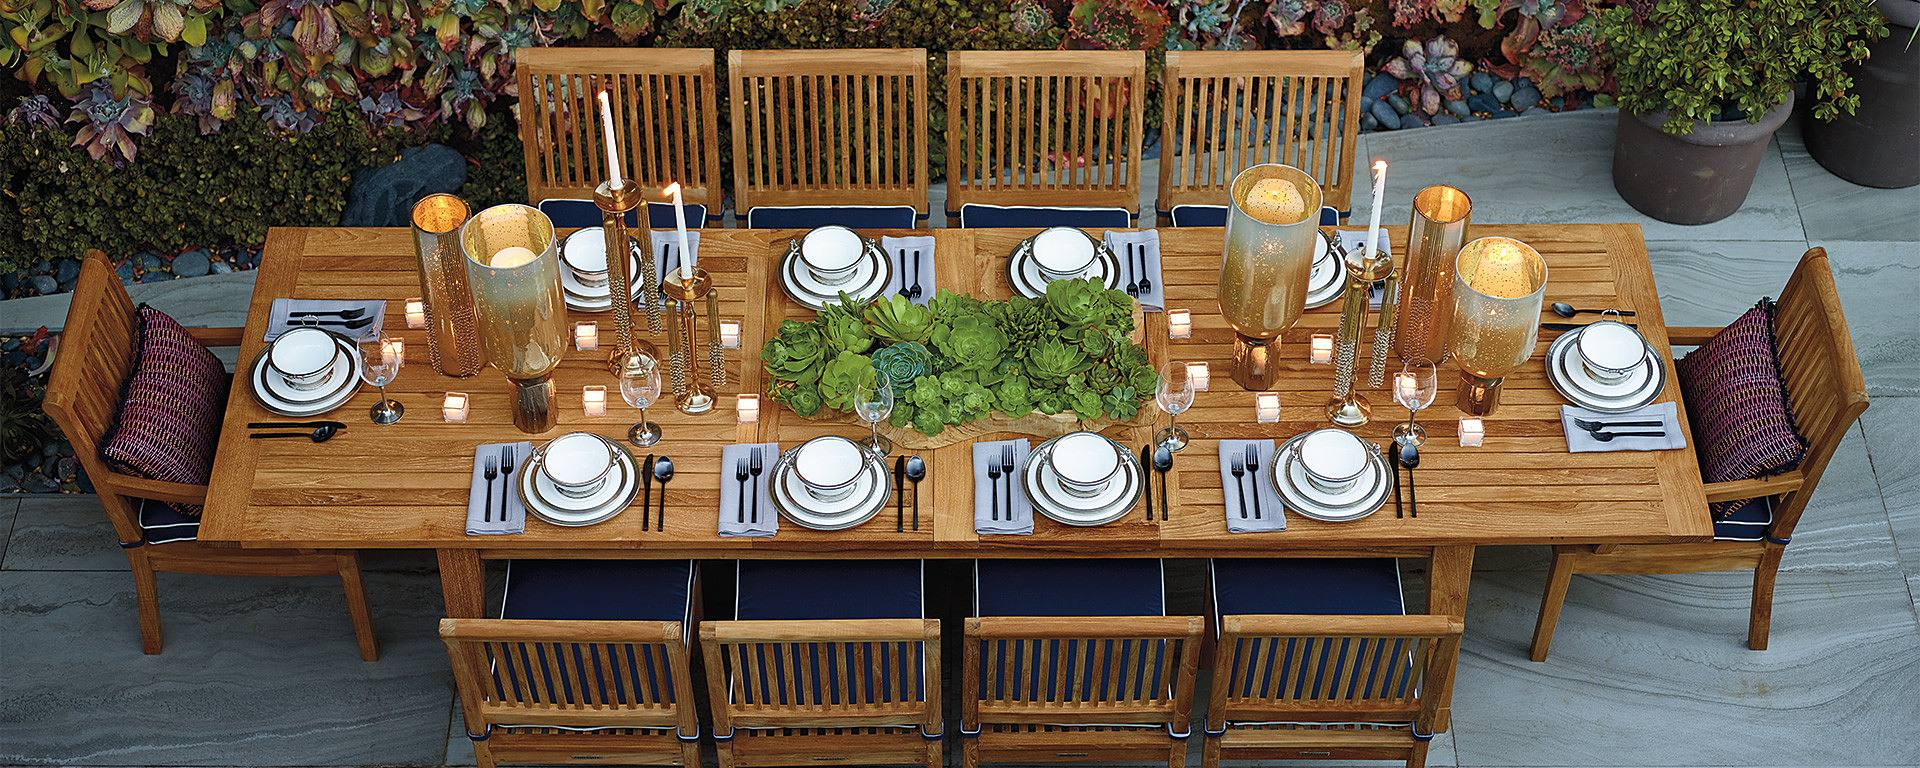 The Dos & Don'ts to an Outdoor Dinner Party